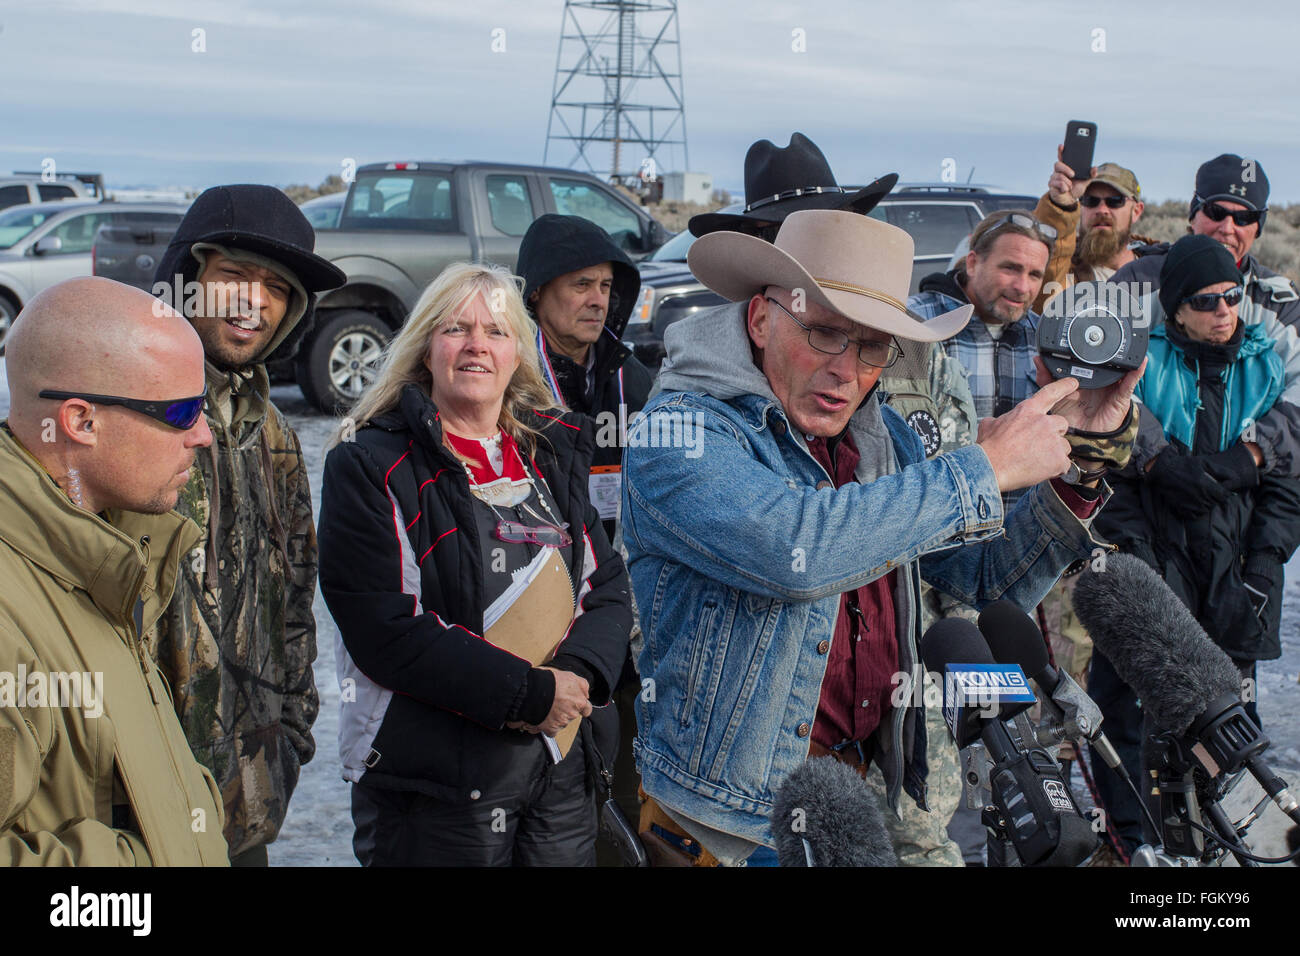 LaVoy Finicum shows off surveillance camera supposedly confiscated from the FBI during the Occupation of the Malheur - Stock Image